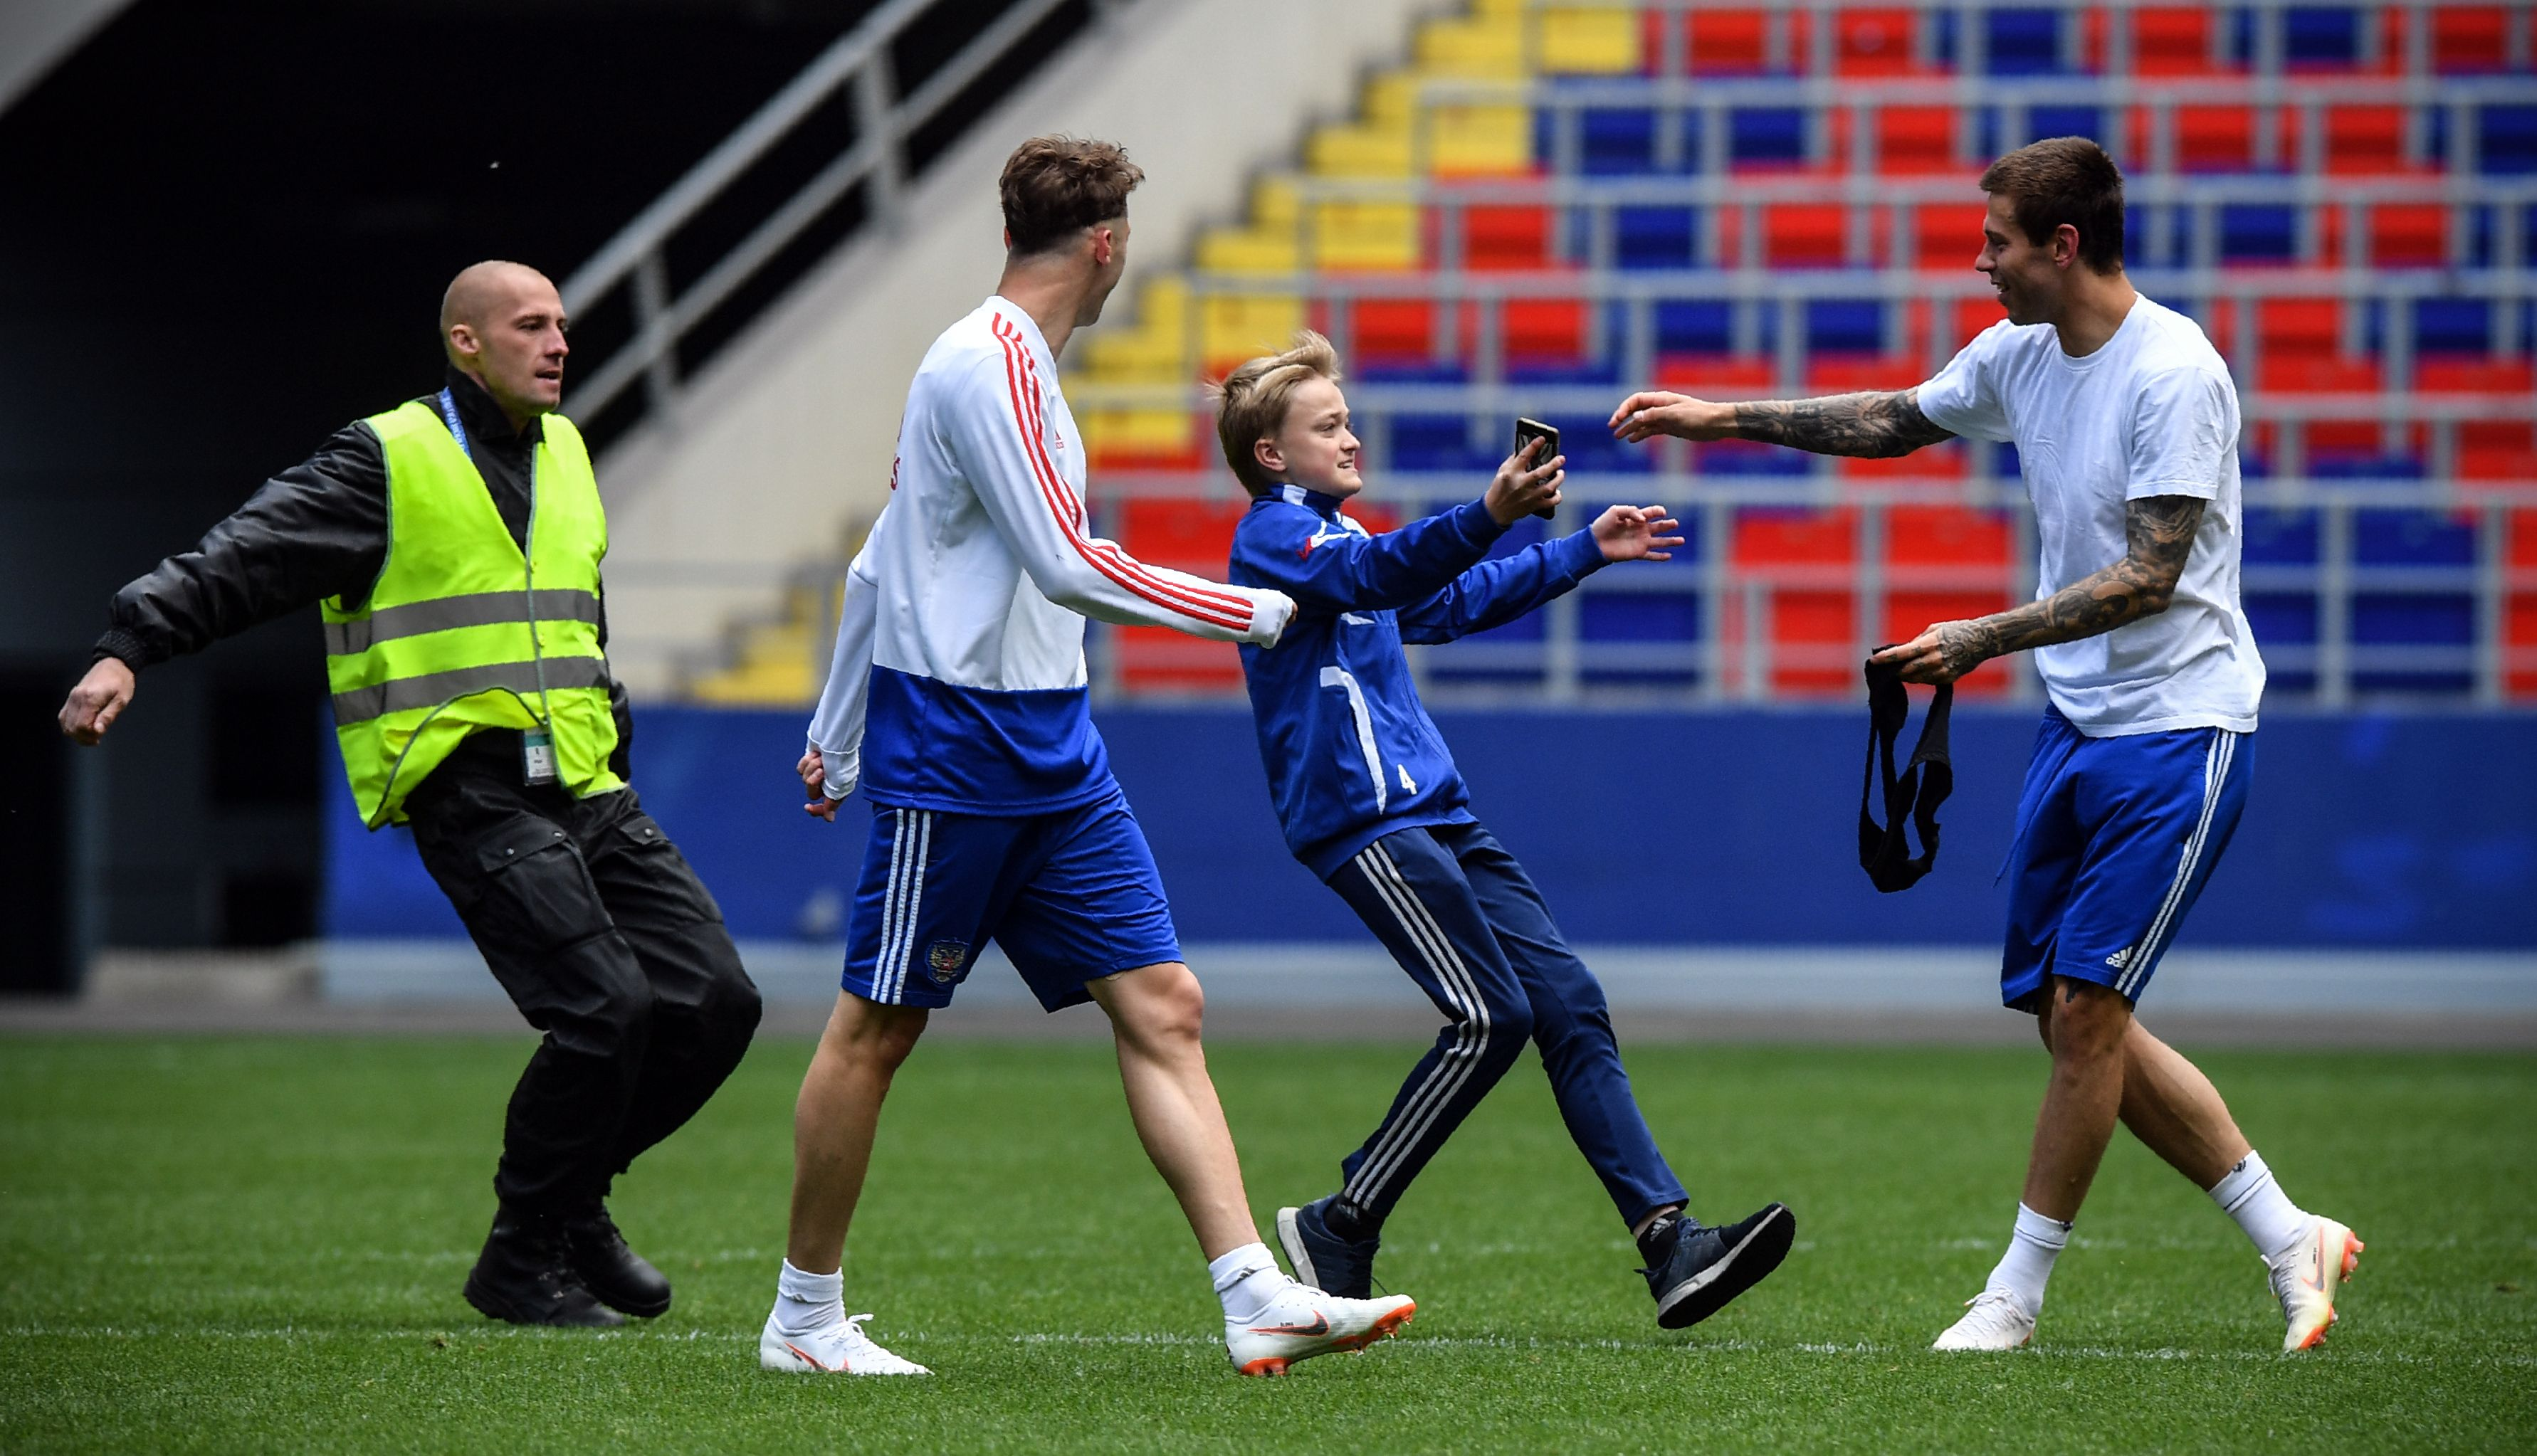 Russia's forward Fyodor Smolov (R) protects a boy as security personnel try to detain him at the pitch during a training session of the Russian national football team at Moscow's VEB Arena stadium on June 9, 2018, ahead of the Russia 2018 World Cup. / AFP PHOTO / Alexander NEMENOV